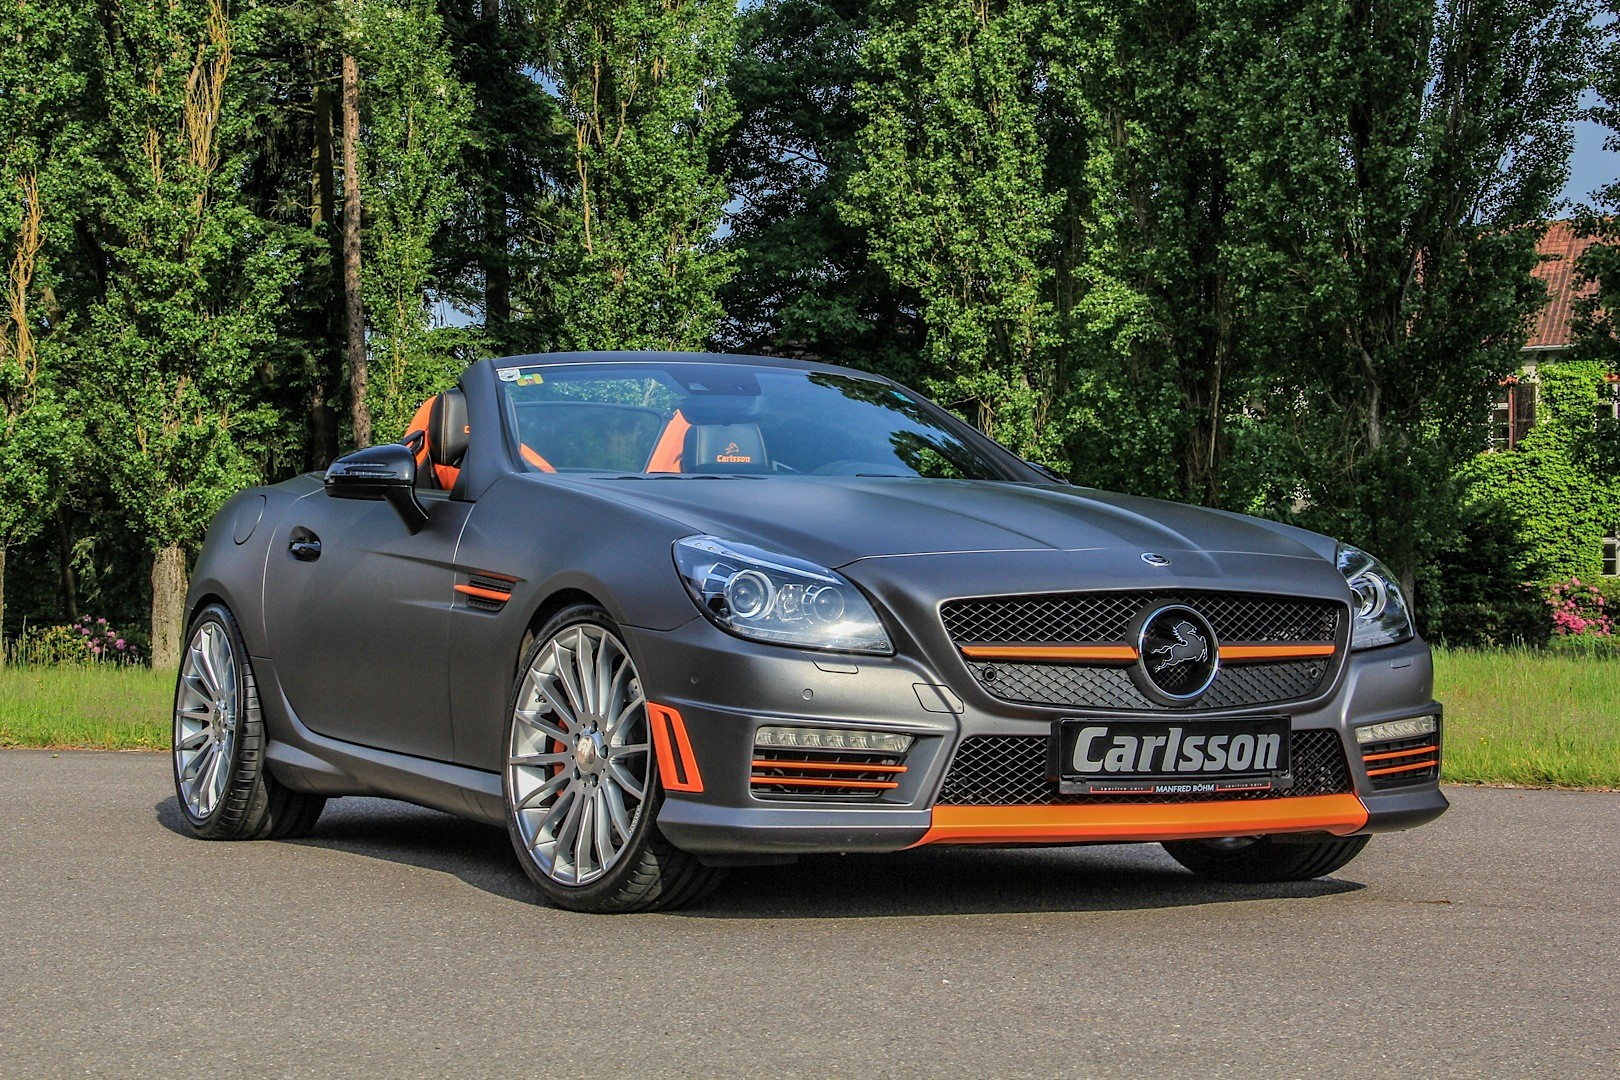 mercedes slk 55 amg gets carlsson interior with orange and carbon trim autoevolution. Black Bedroom Furniture Sets. Home Design Ideas